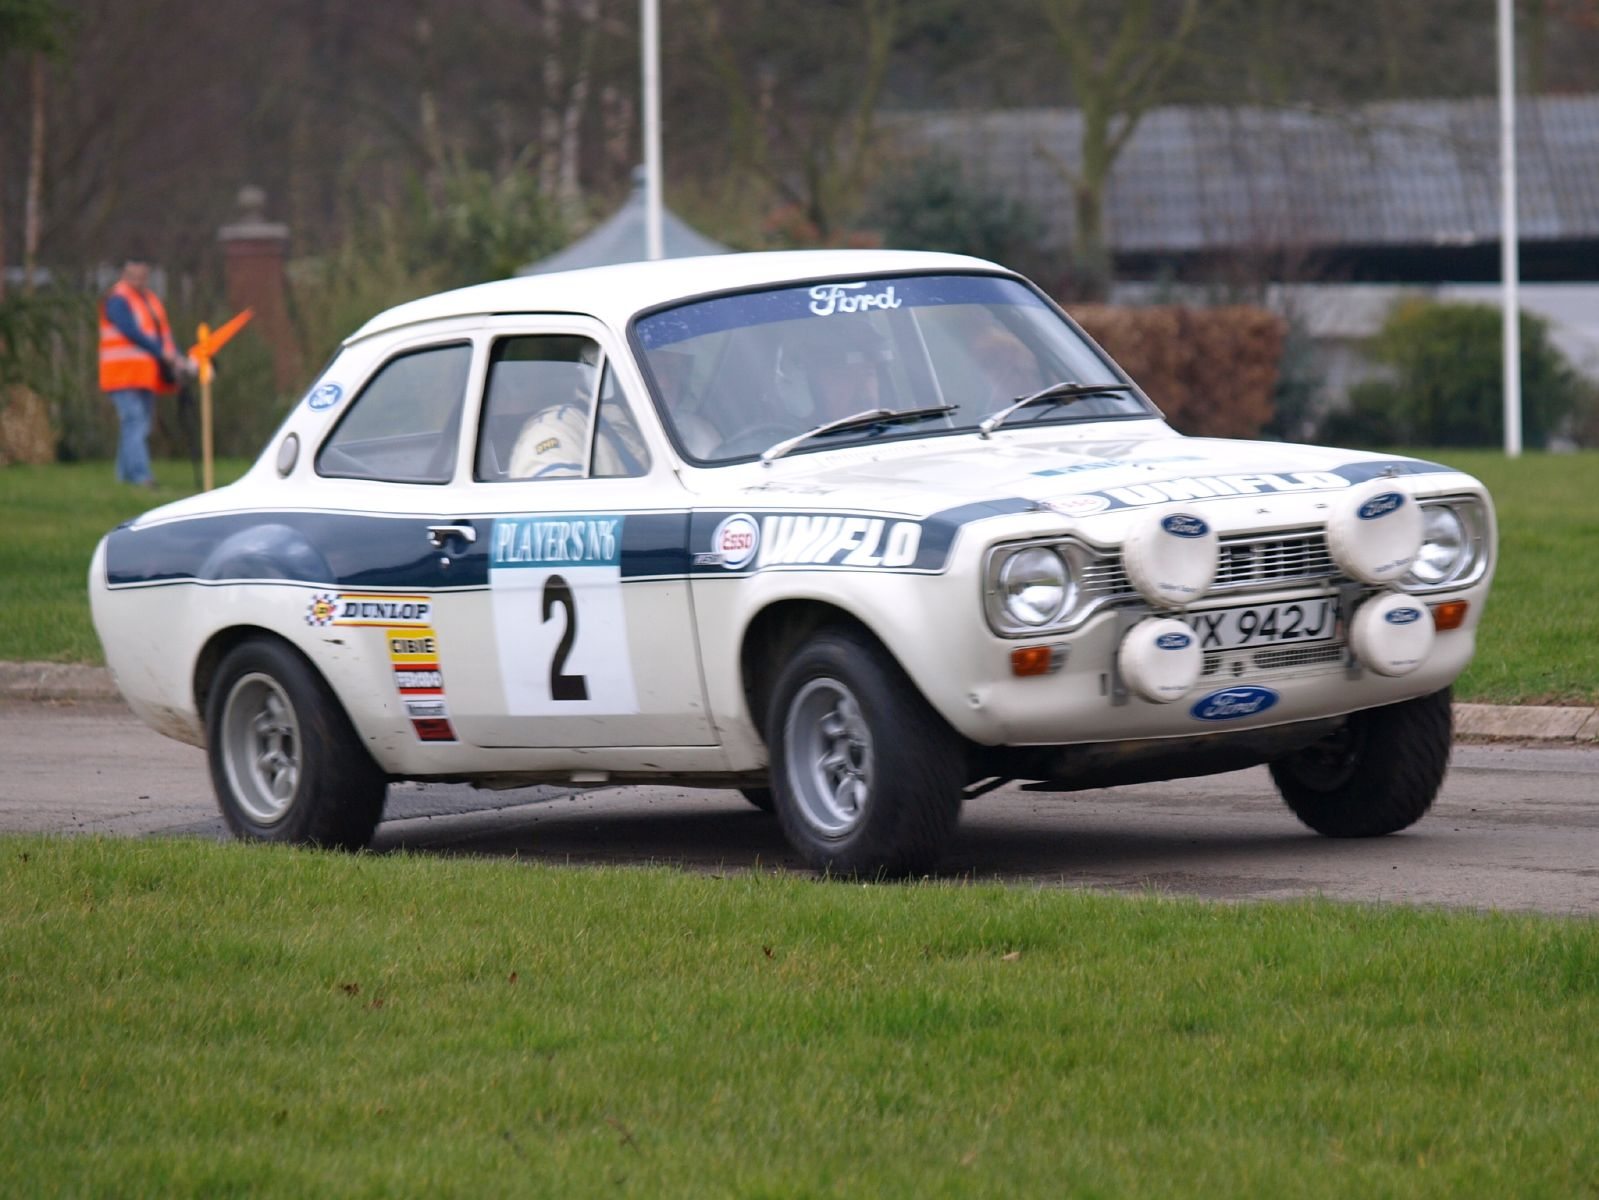 http://upload.wikimedia.org/wikipedia/commons/9/93/Ford_Escort_RS1600_-_Race_Retro_2008_03.jpg